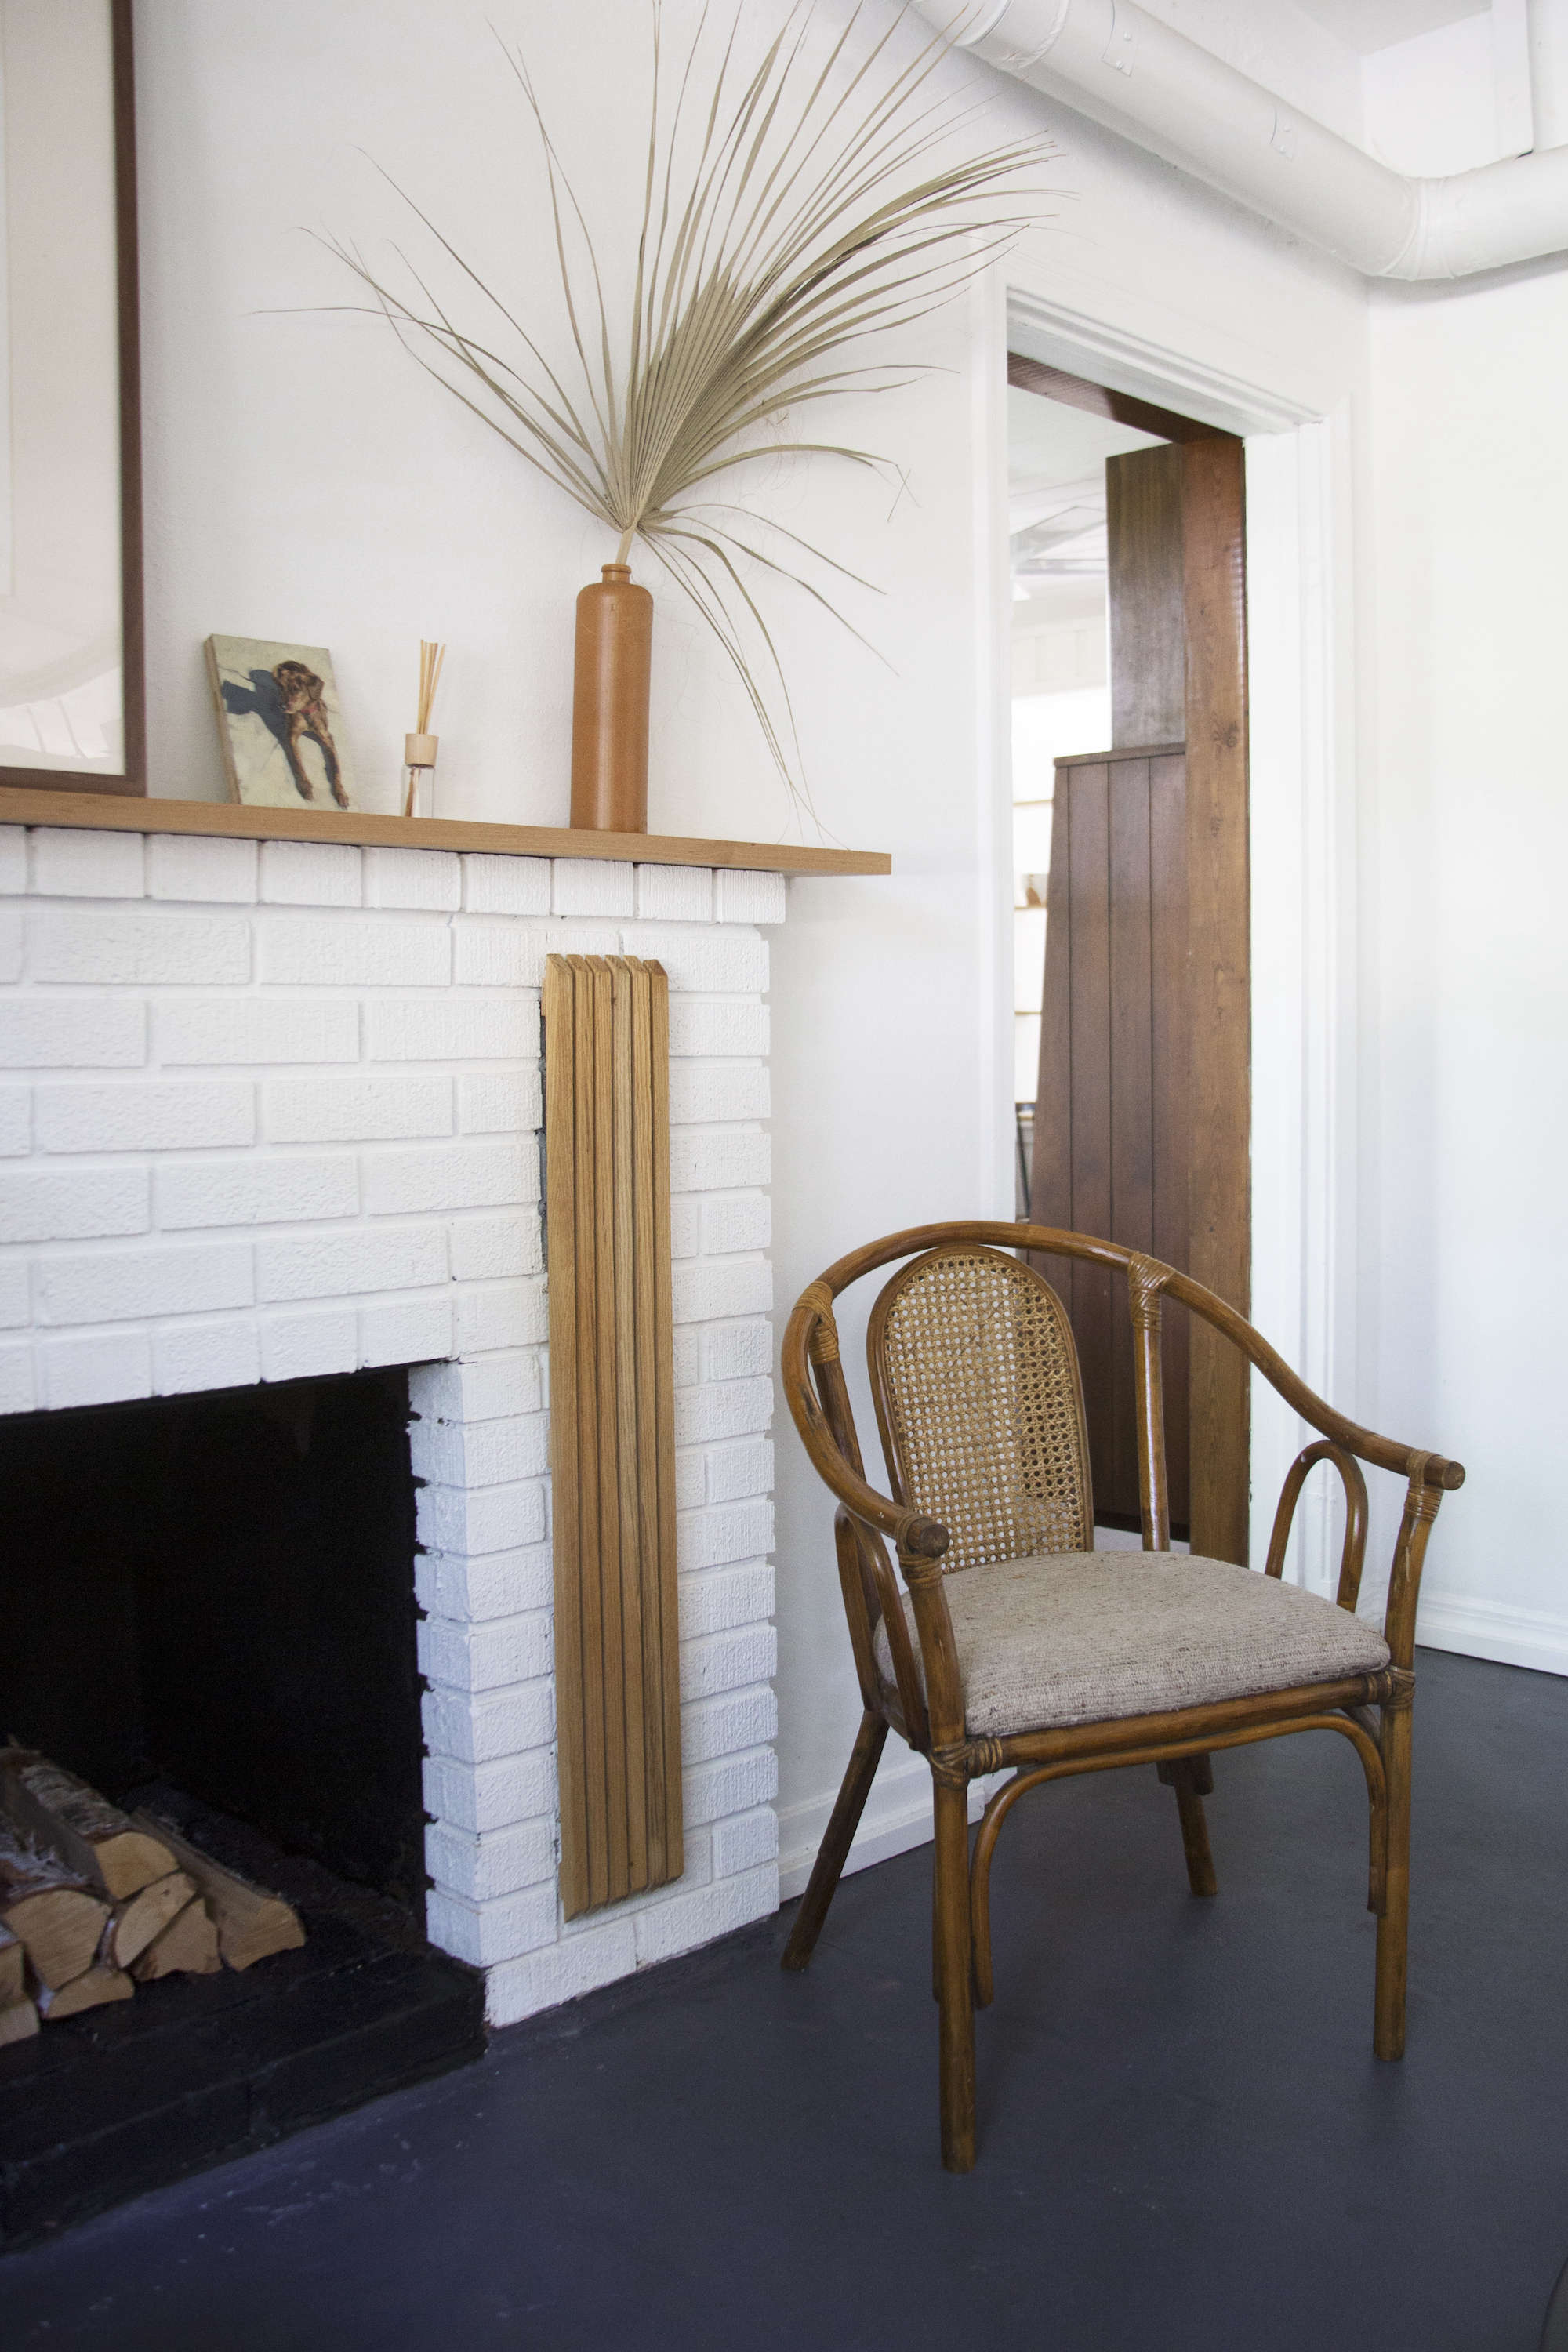 Before & After: A Design Duo's Whole-House Overhaul for $15,000